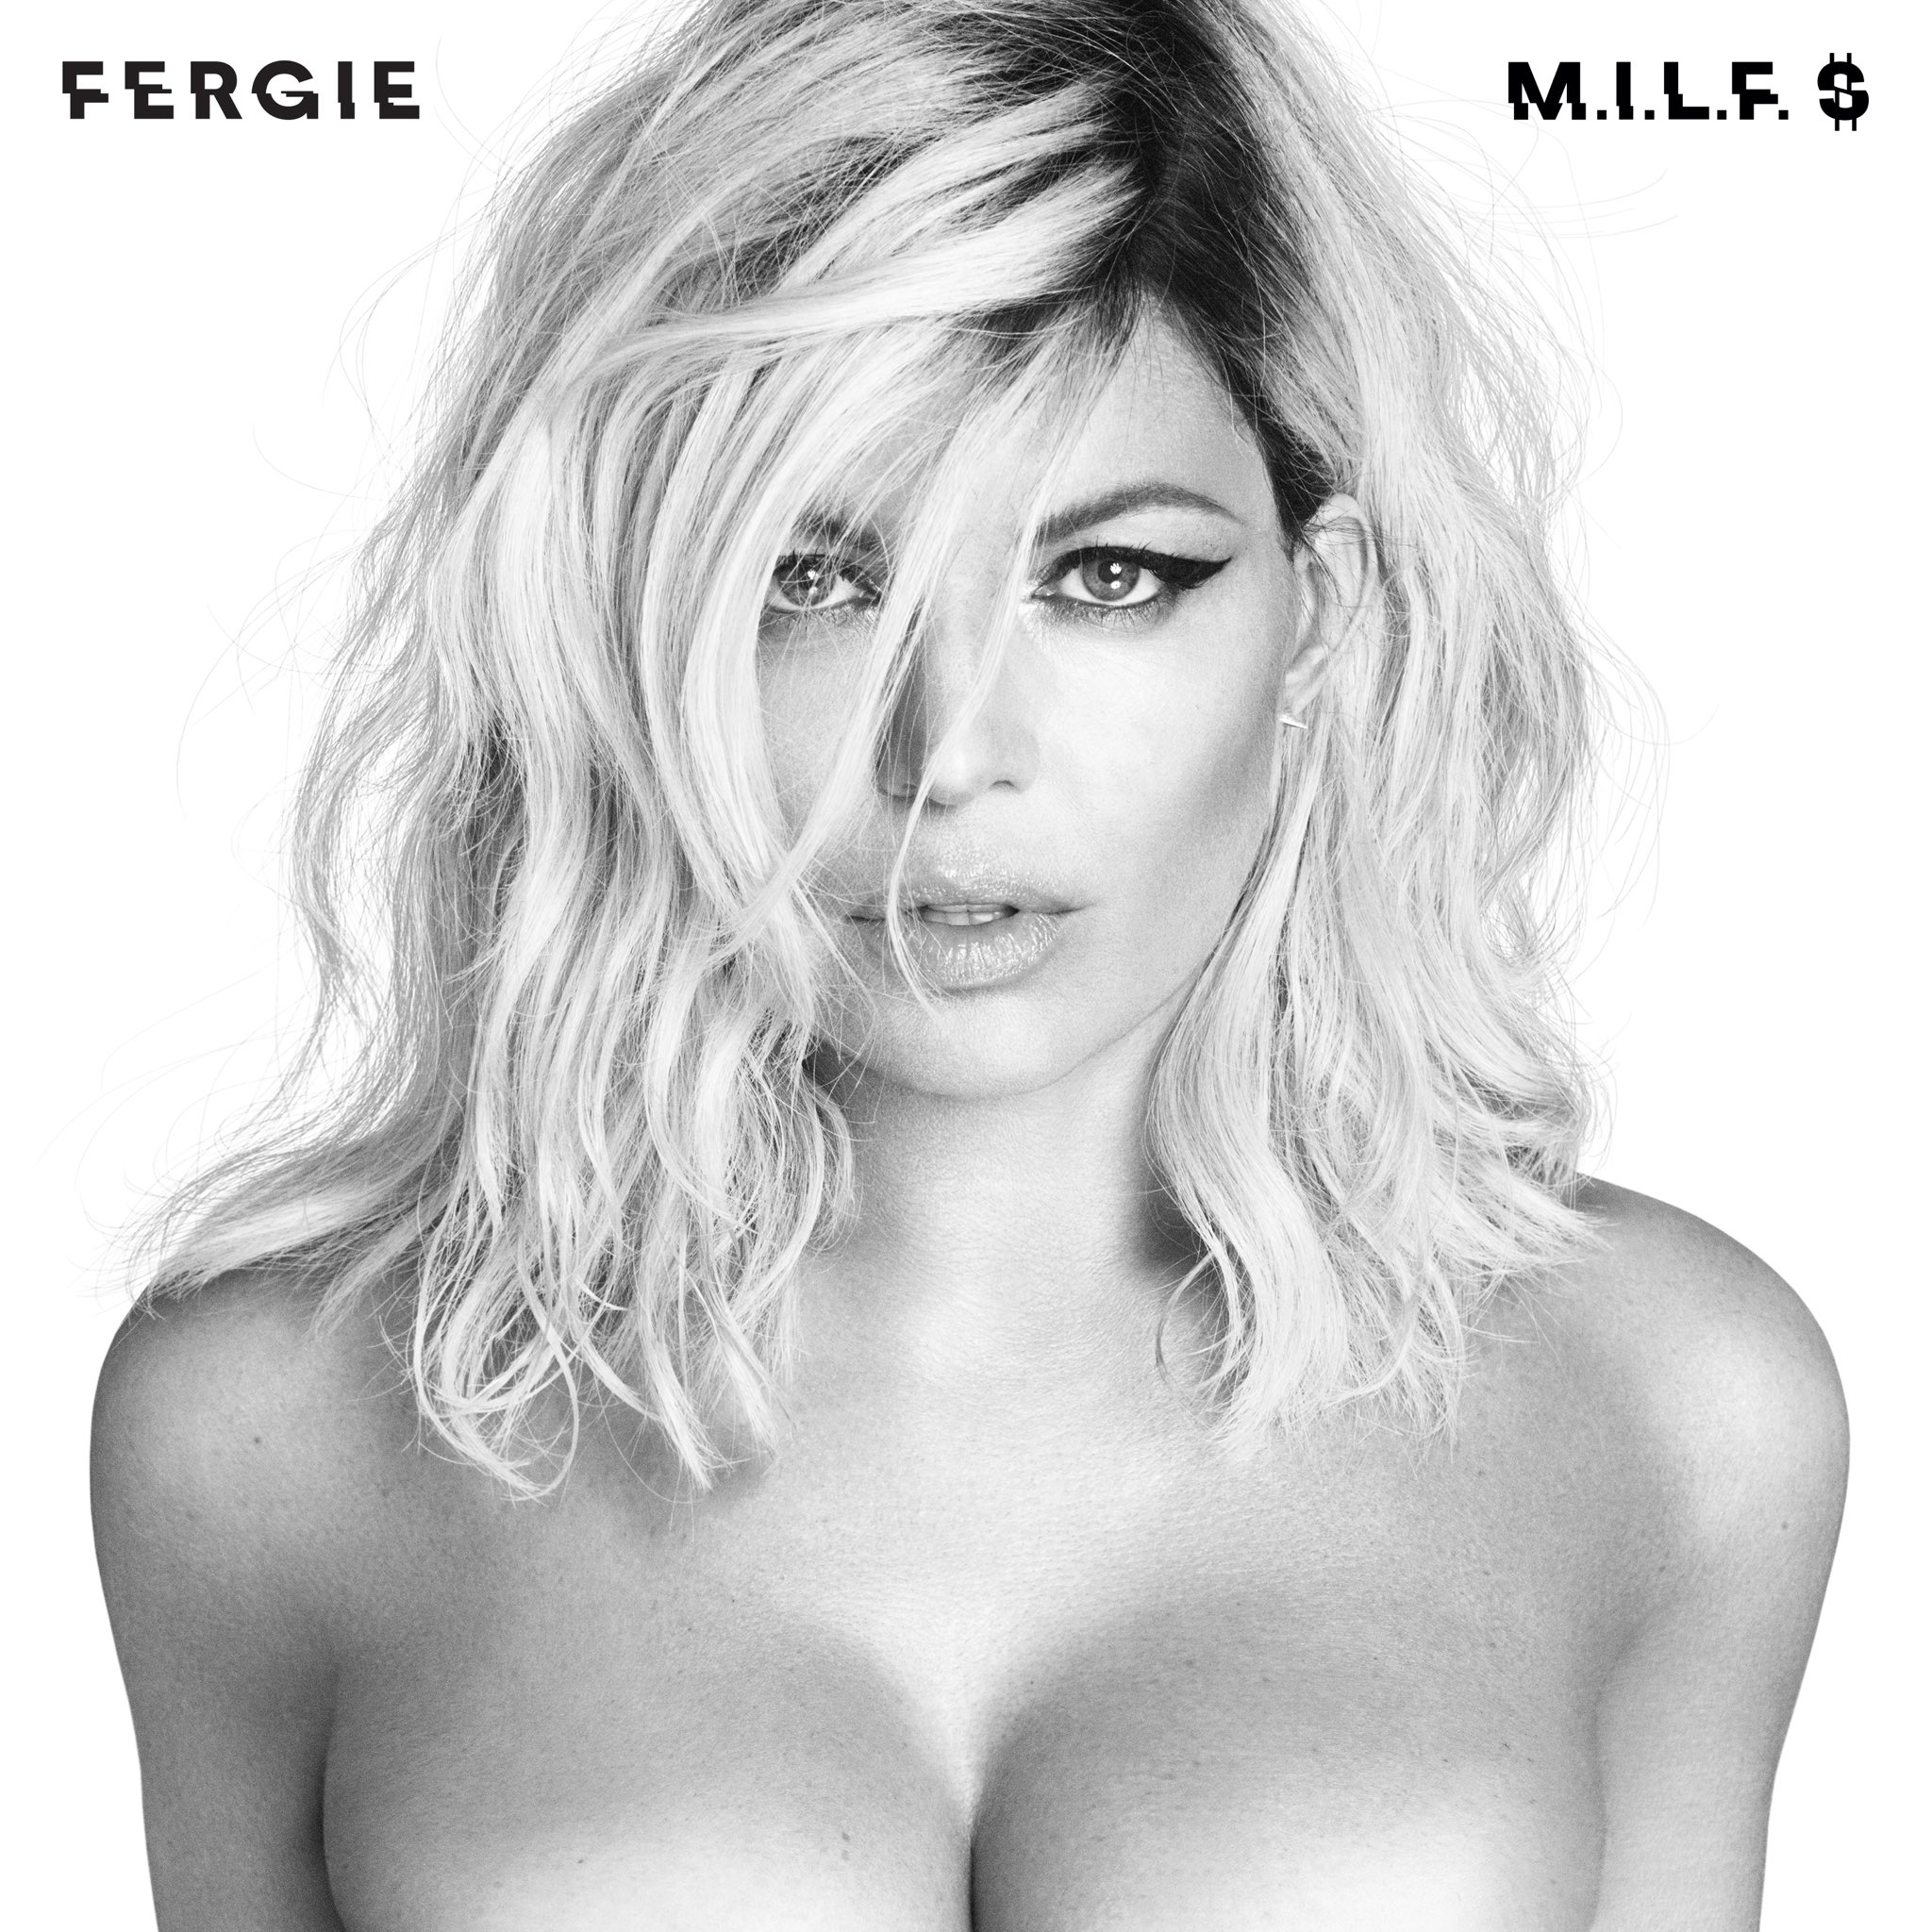 fergie reveals official cover photo for milf